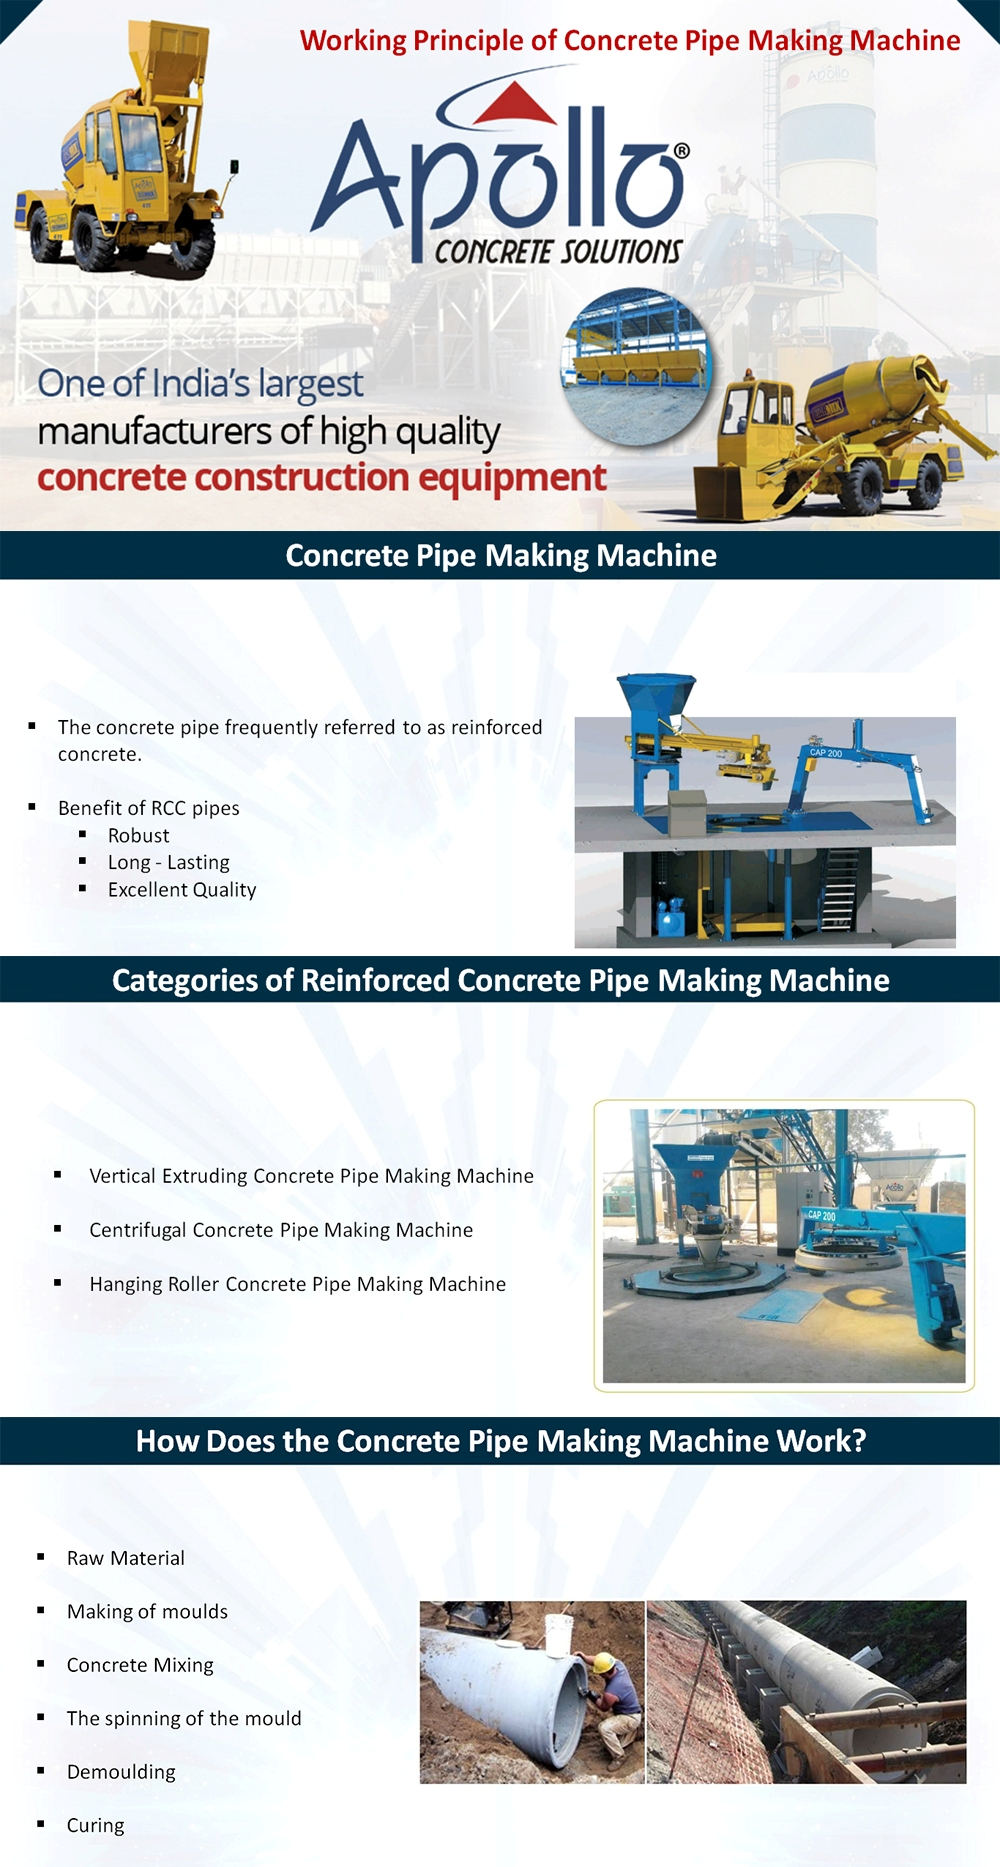 Working Principle of Concrete Pipe Making Machine